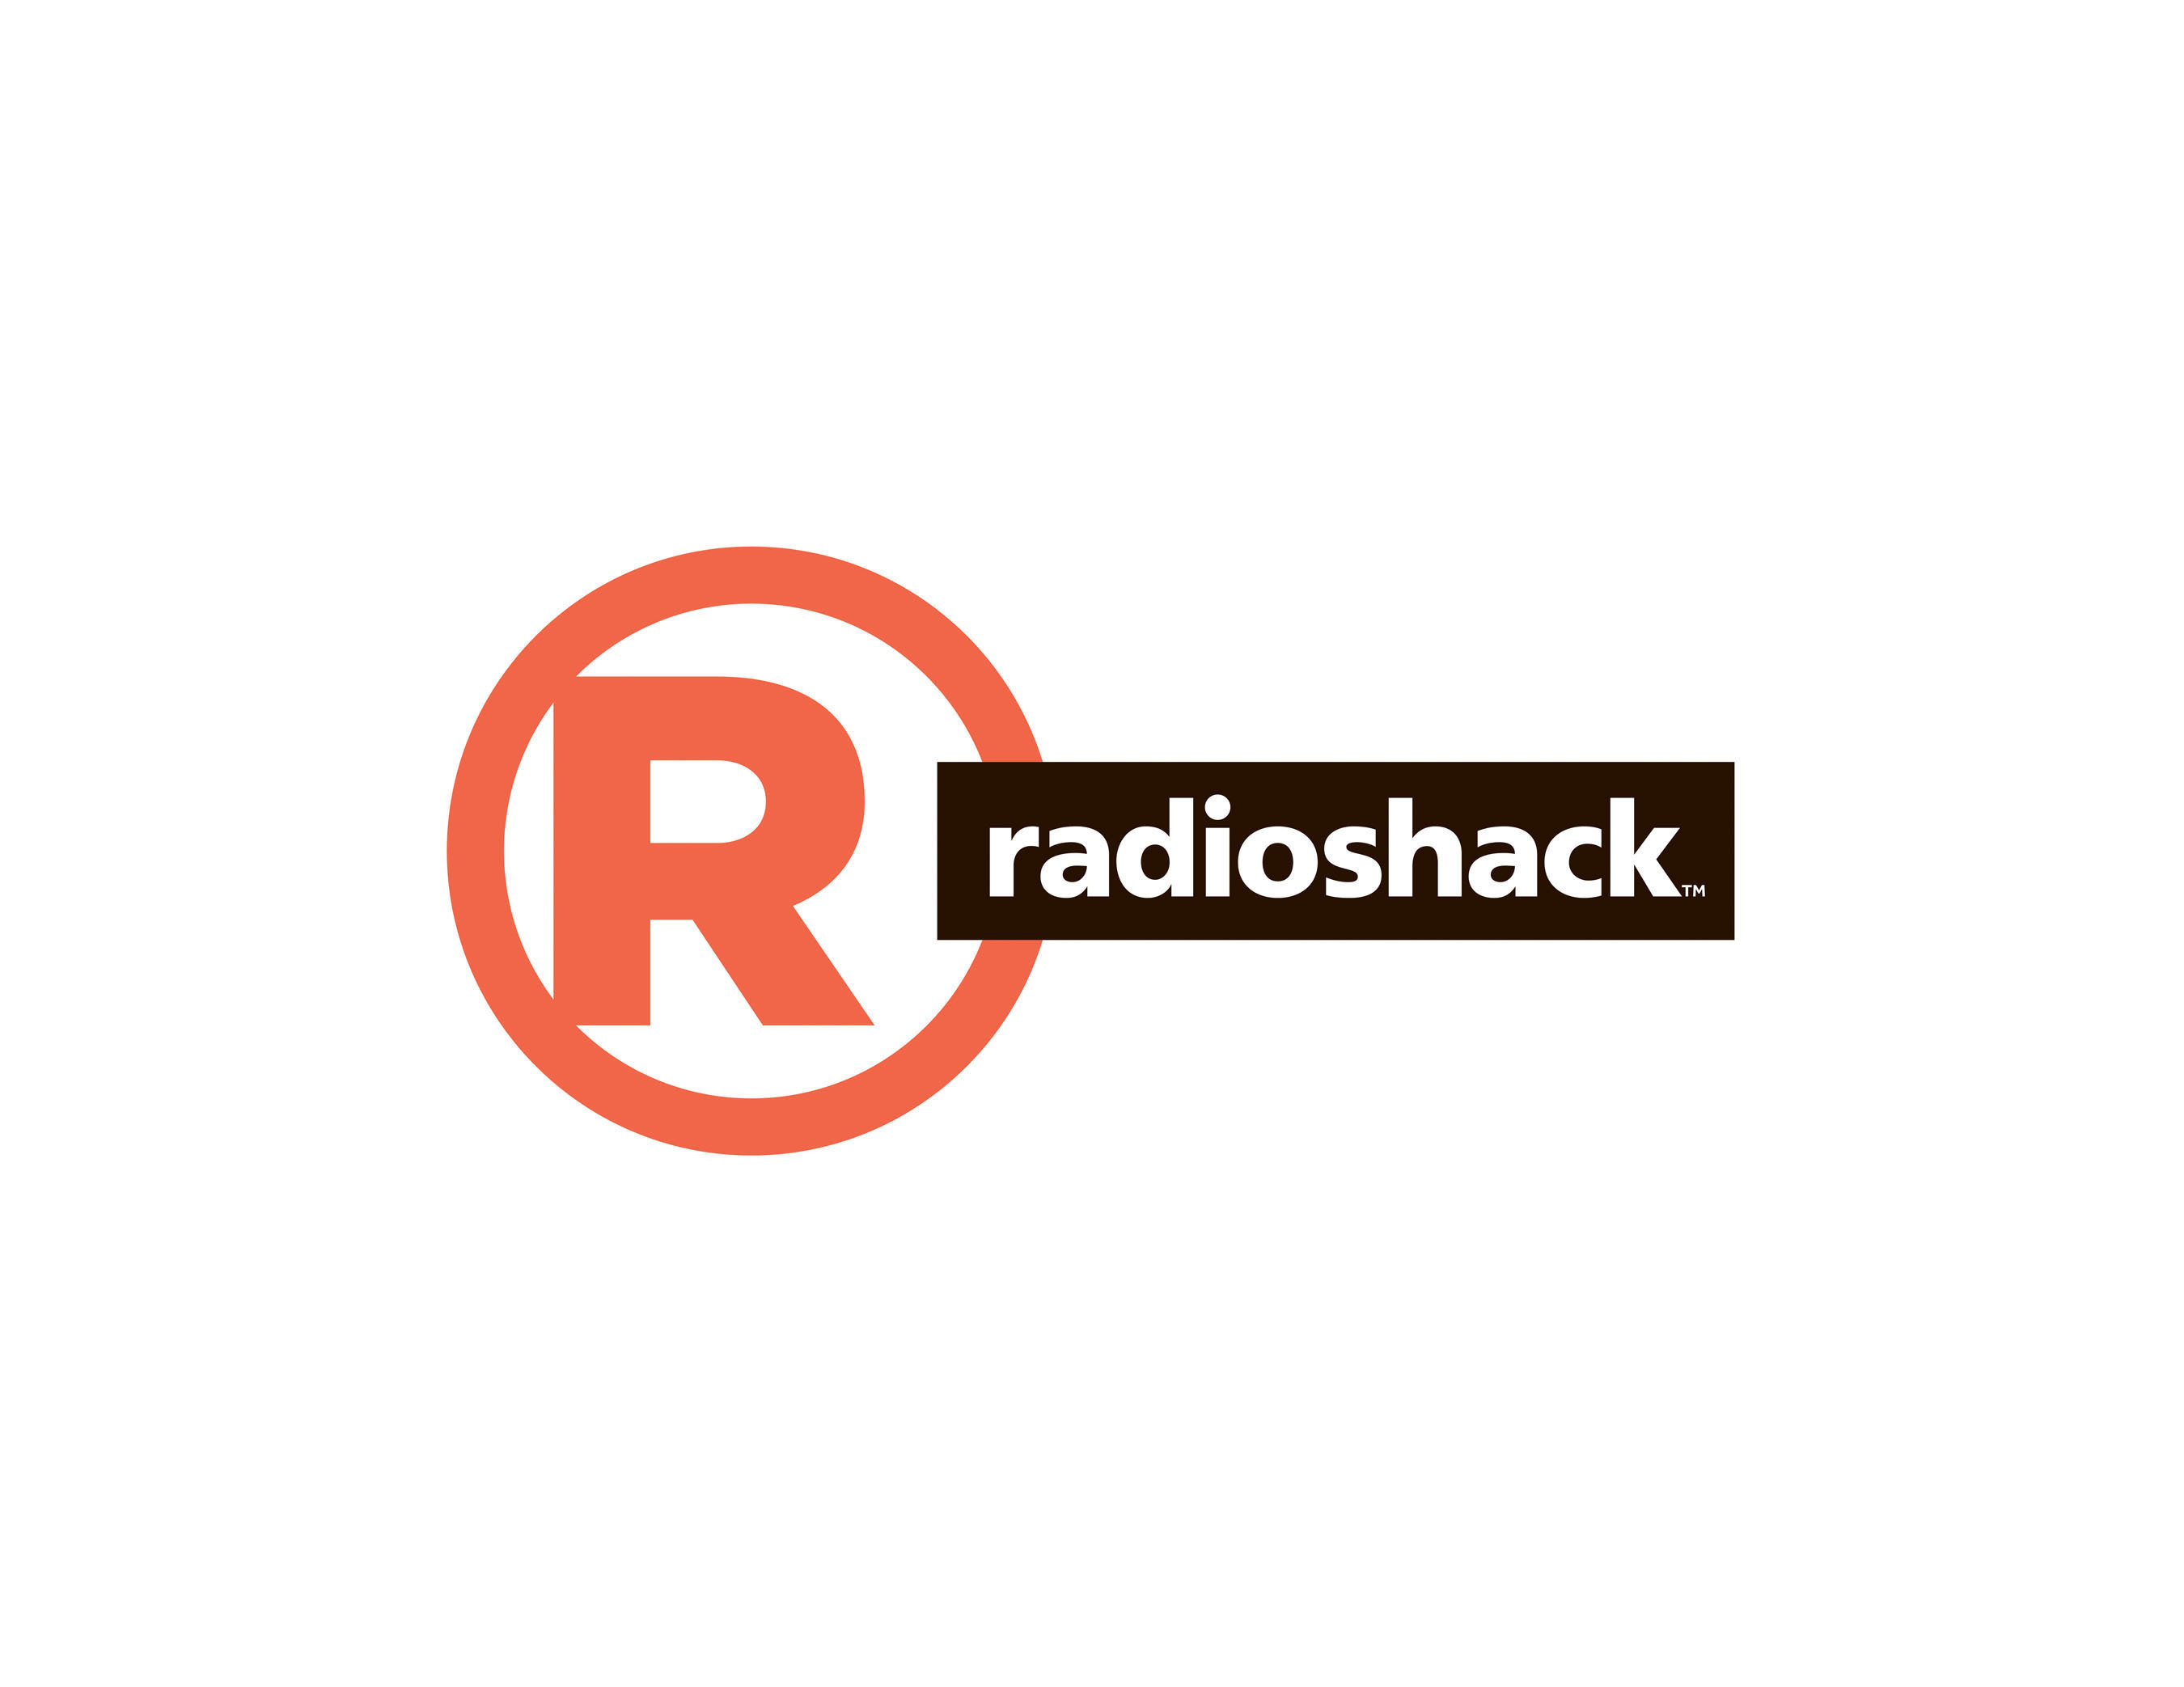 radio shack List of radio shack stores in united states locate the radio shack store near you.